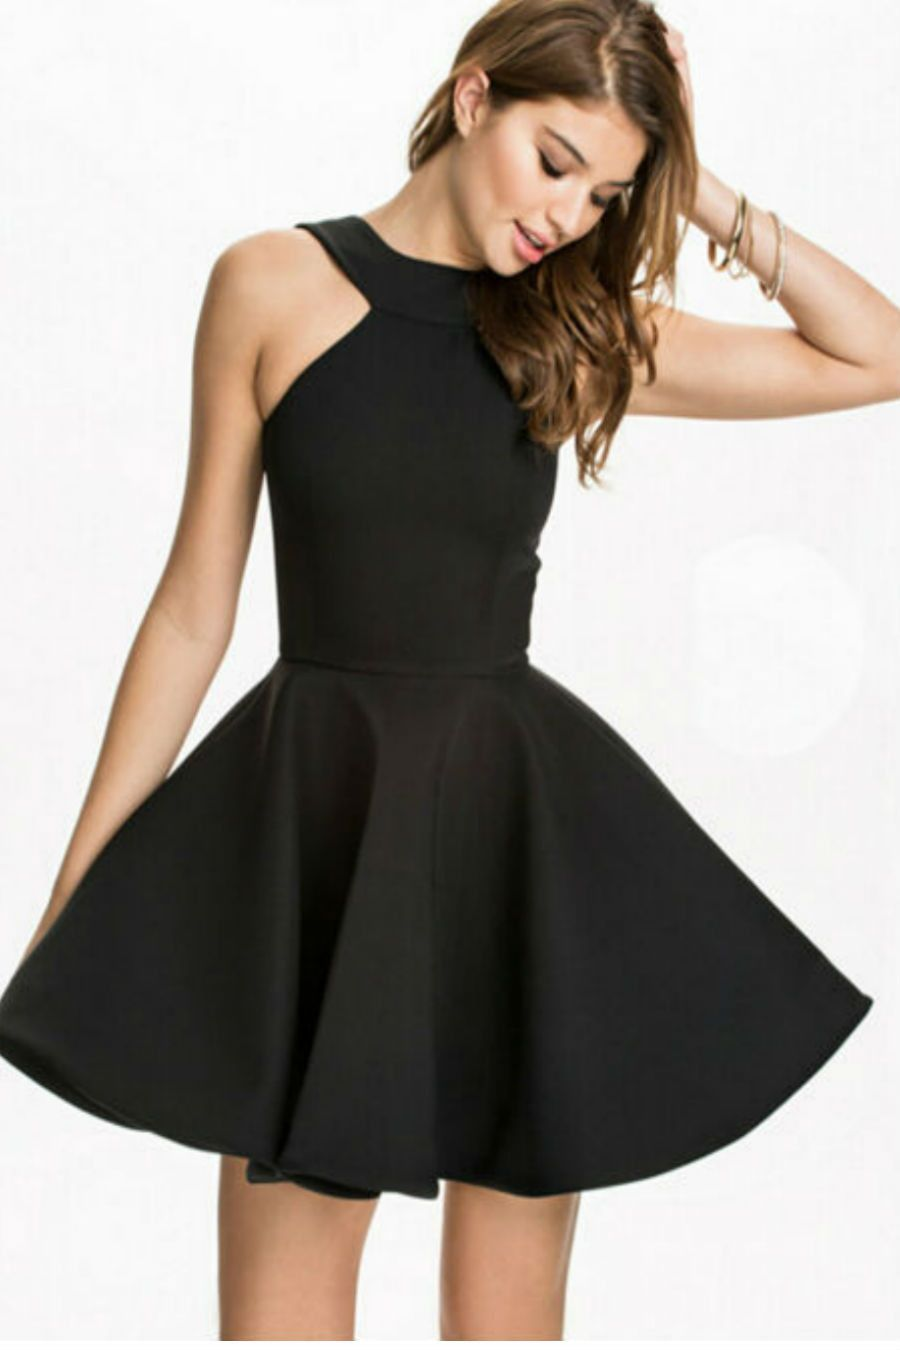 Elegant Black Halter Dress | Black, Homecoming and Clothes